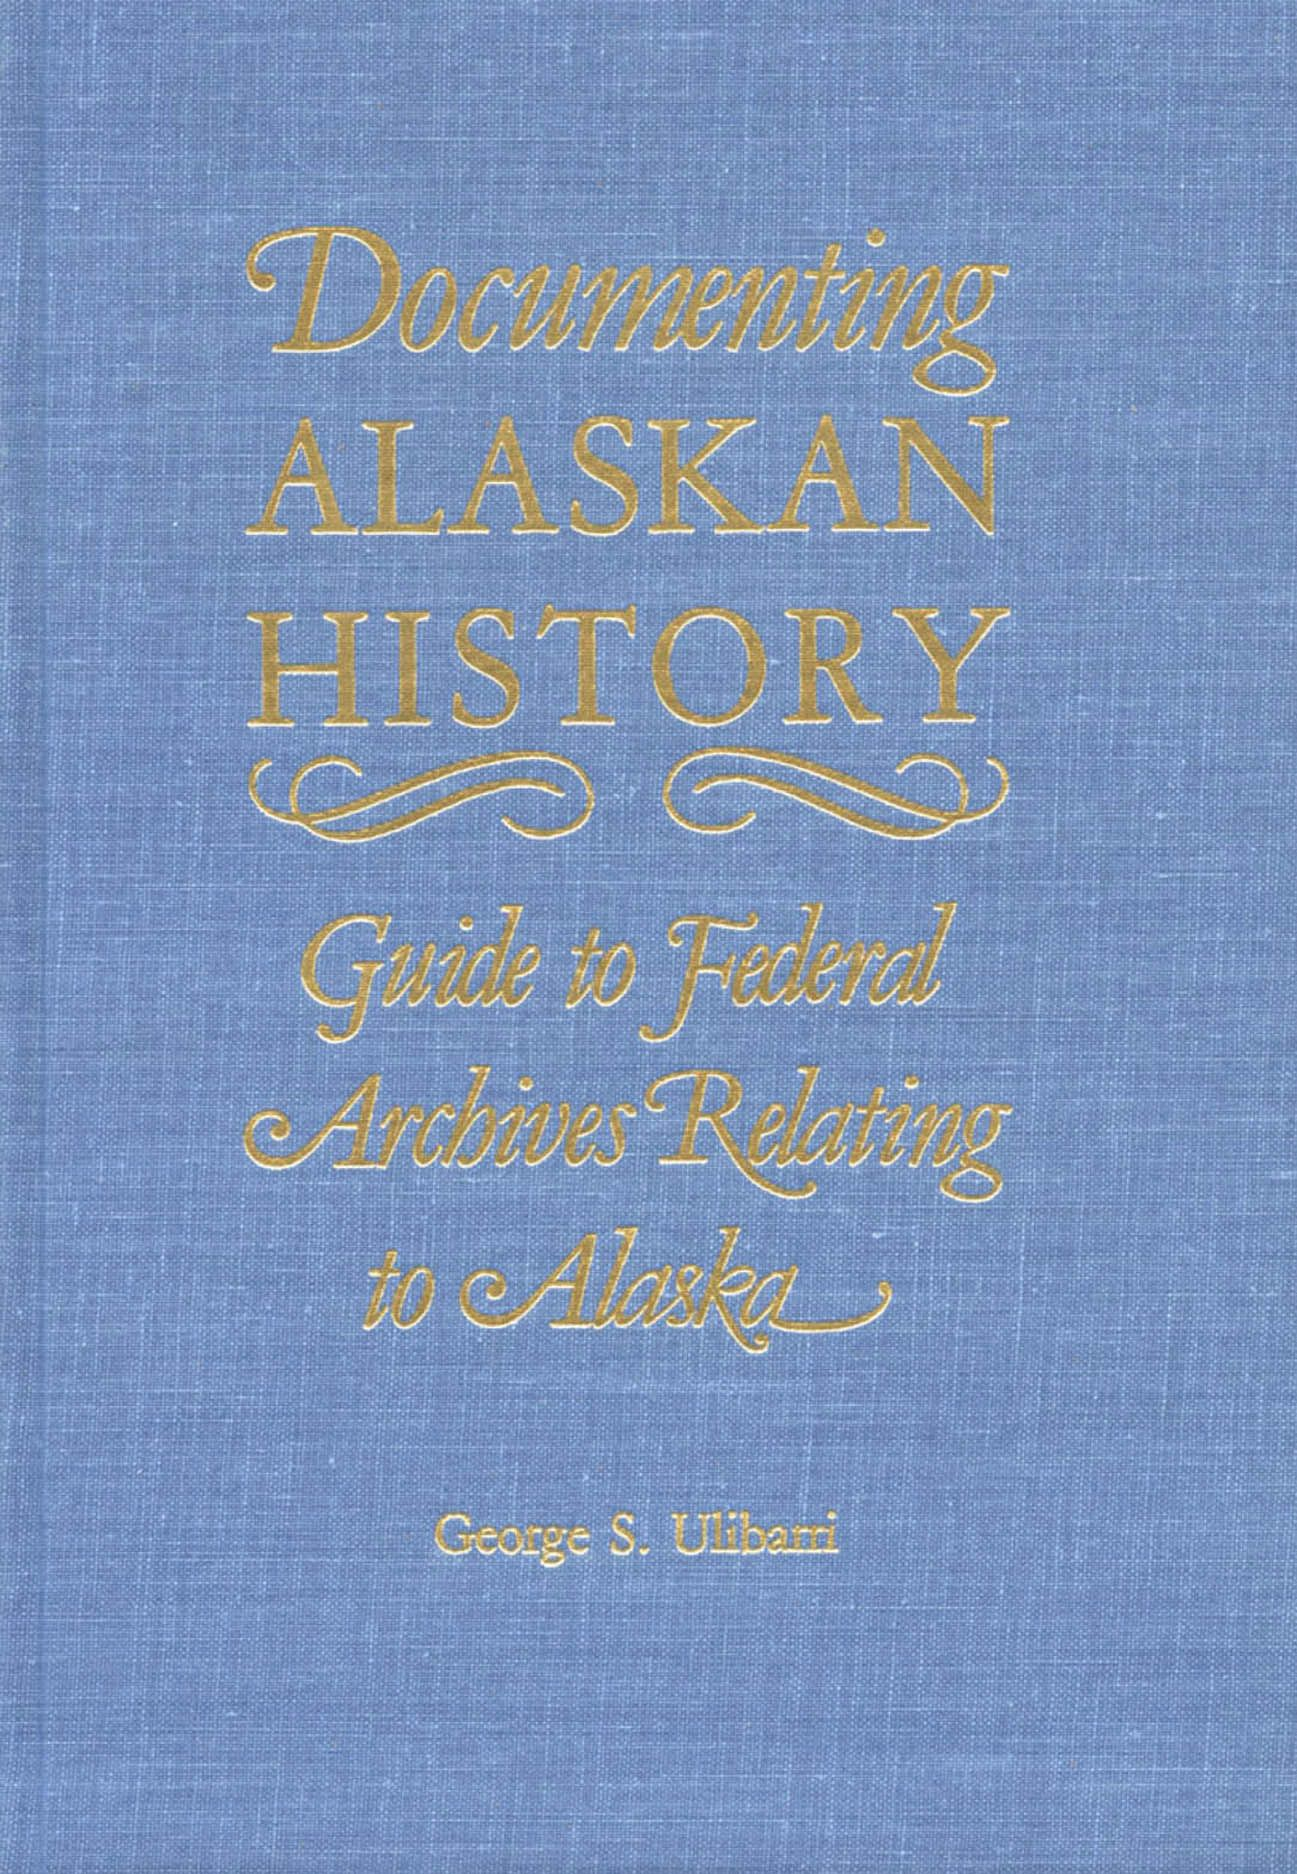 Documenting Alaskan History